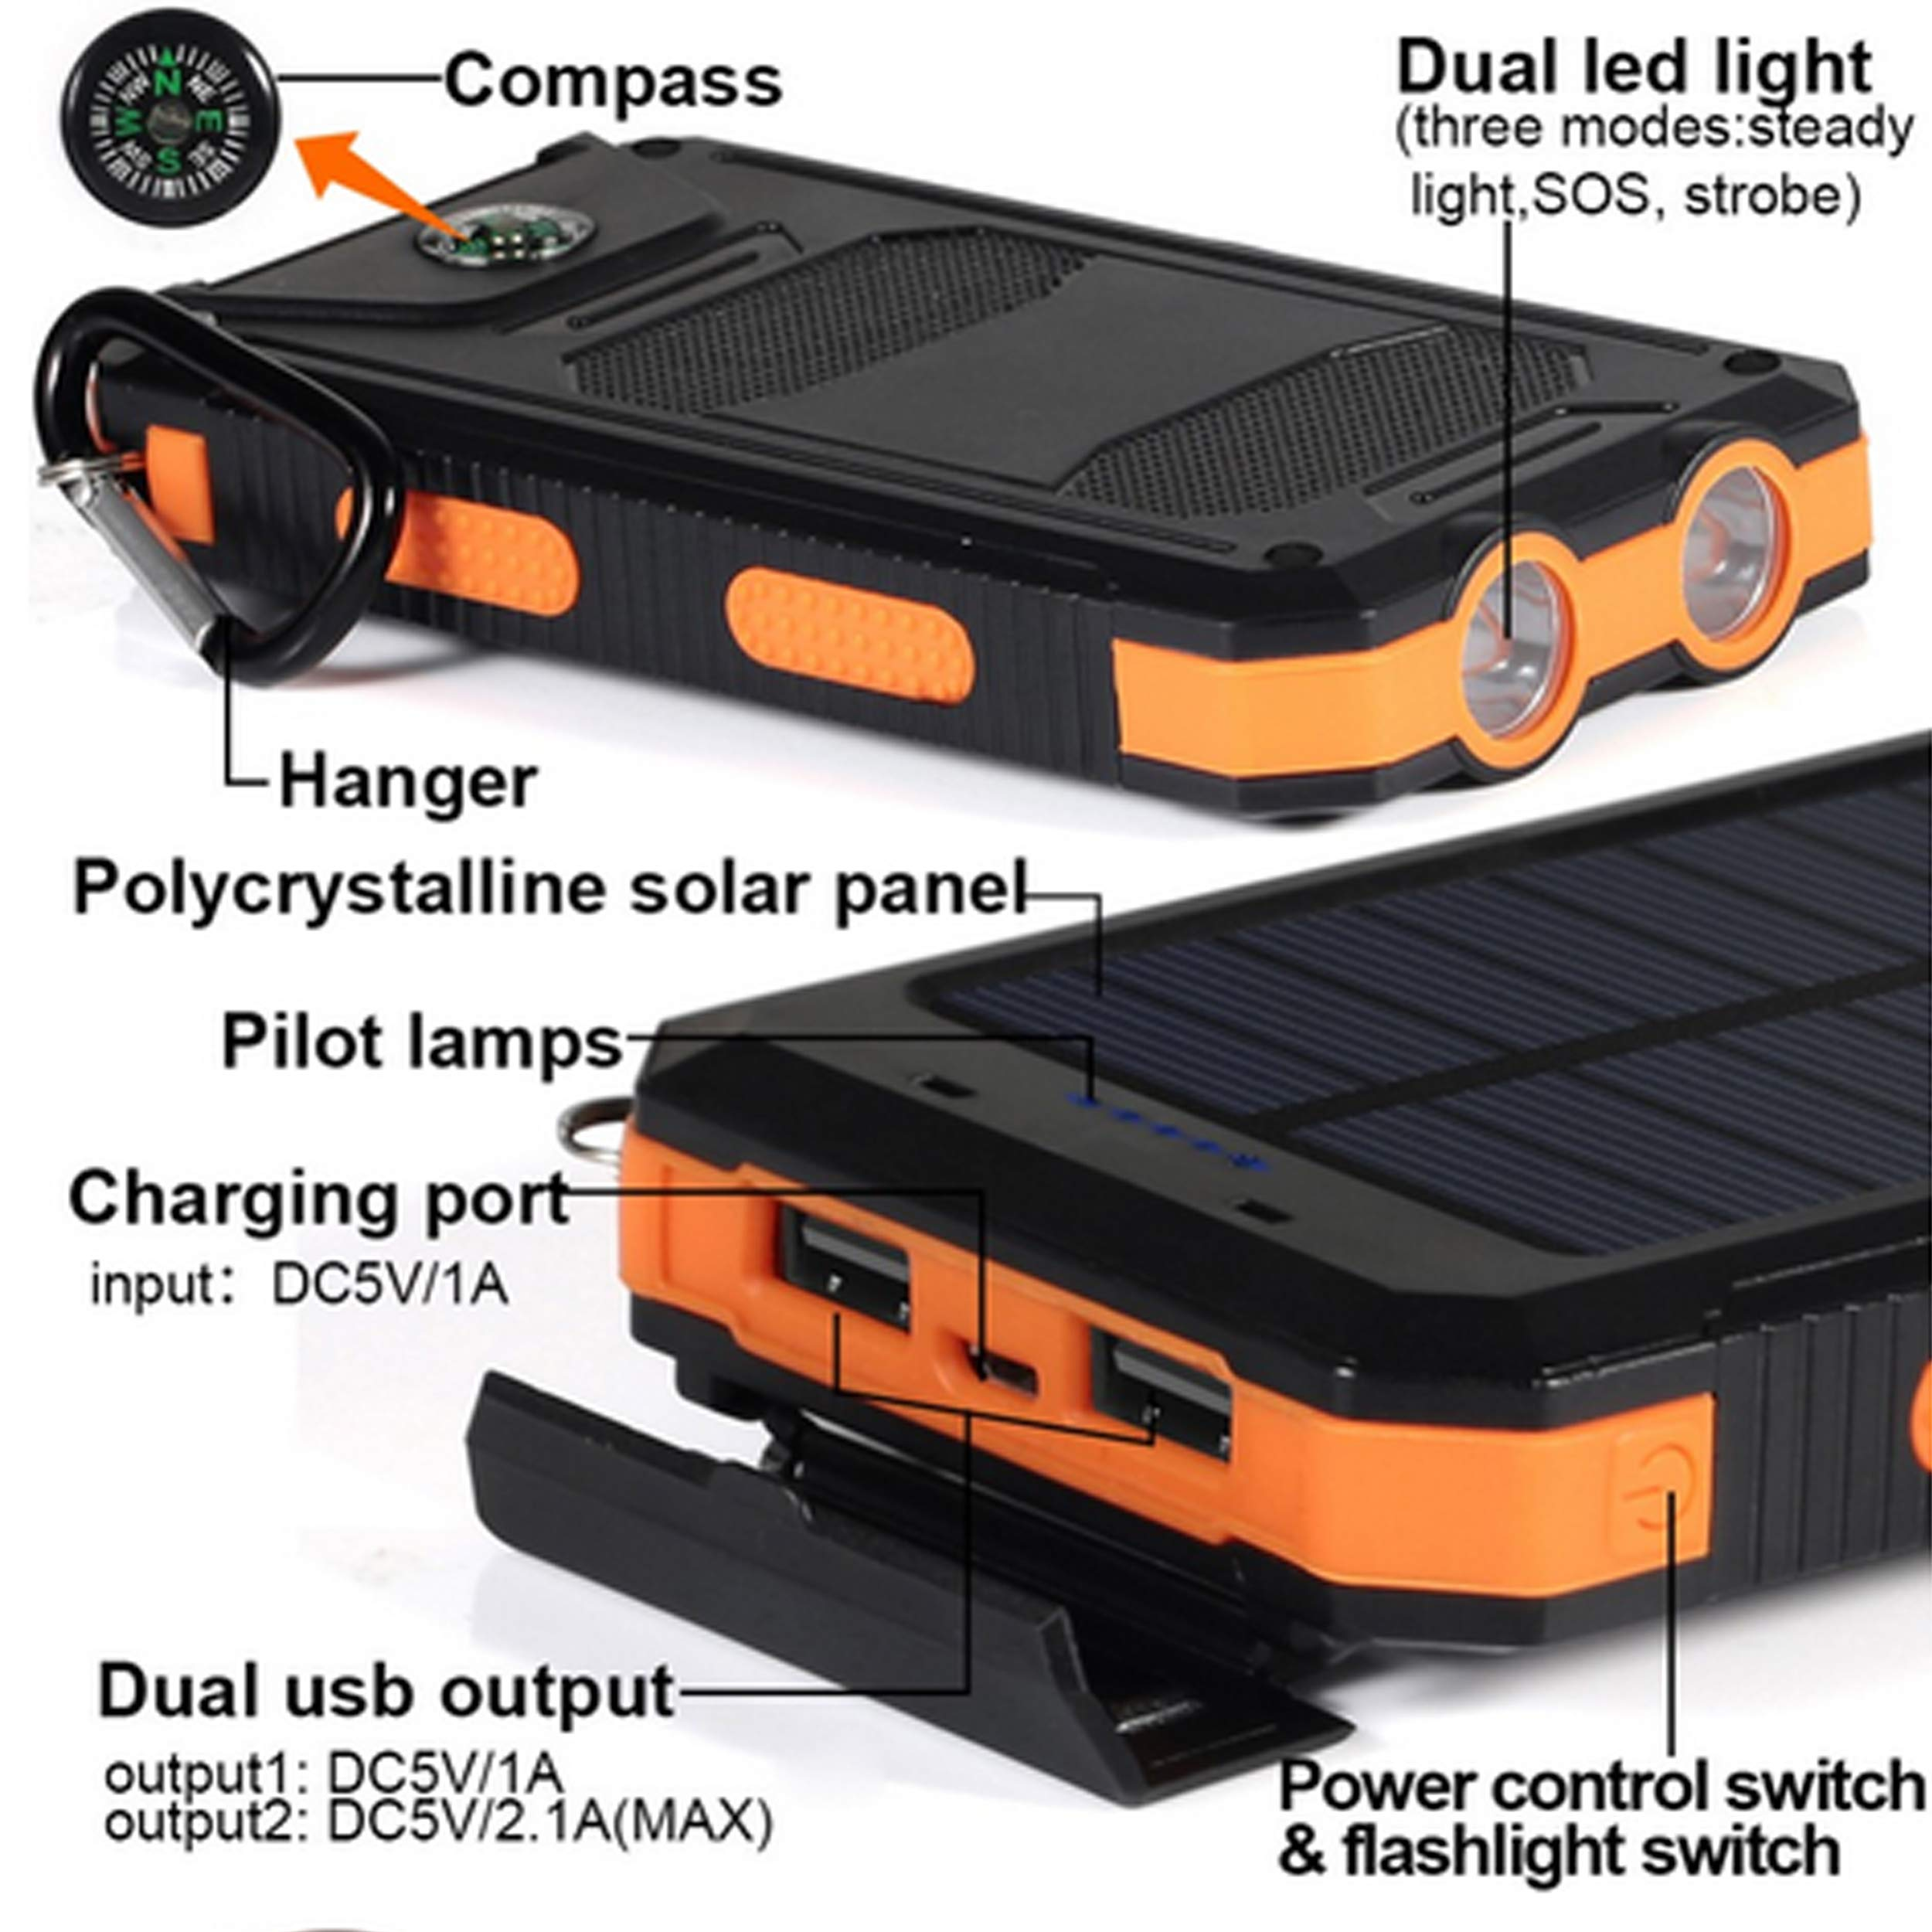 Bysionics Solar Phone Charger,Portable Charger Solar Charger Power Bank 12000mah External Backup Battery Pack Dual USB with 2LED Light Carabiner and Compass for Your Smartphones and More (Orange) by Bysionics (Image #2)